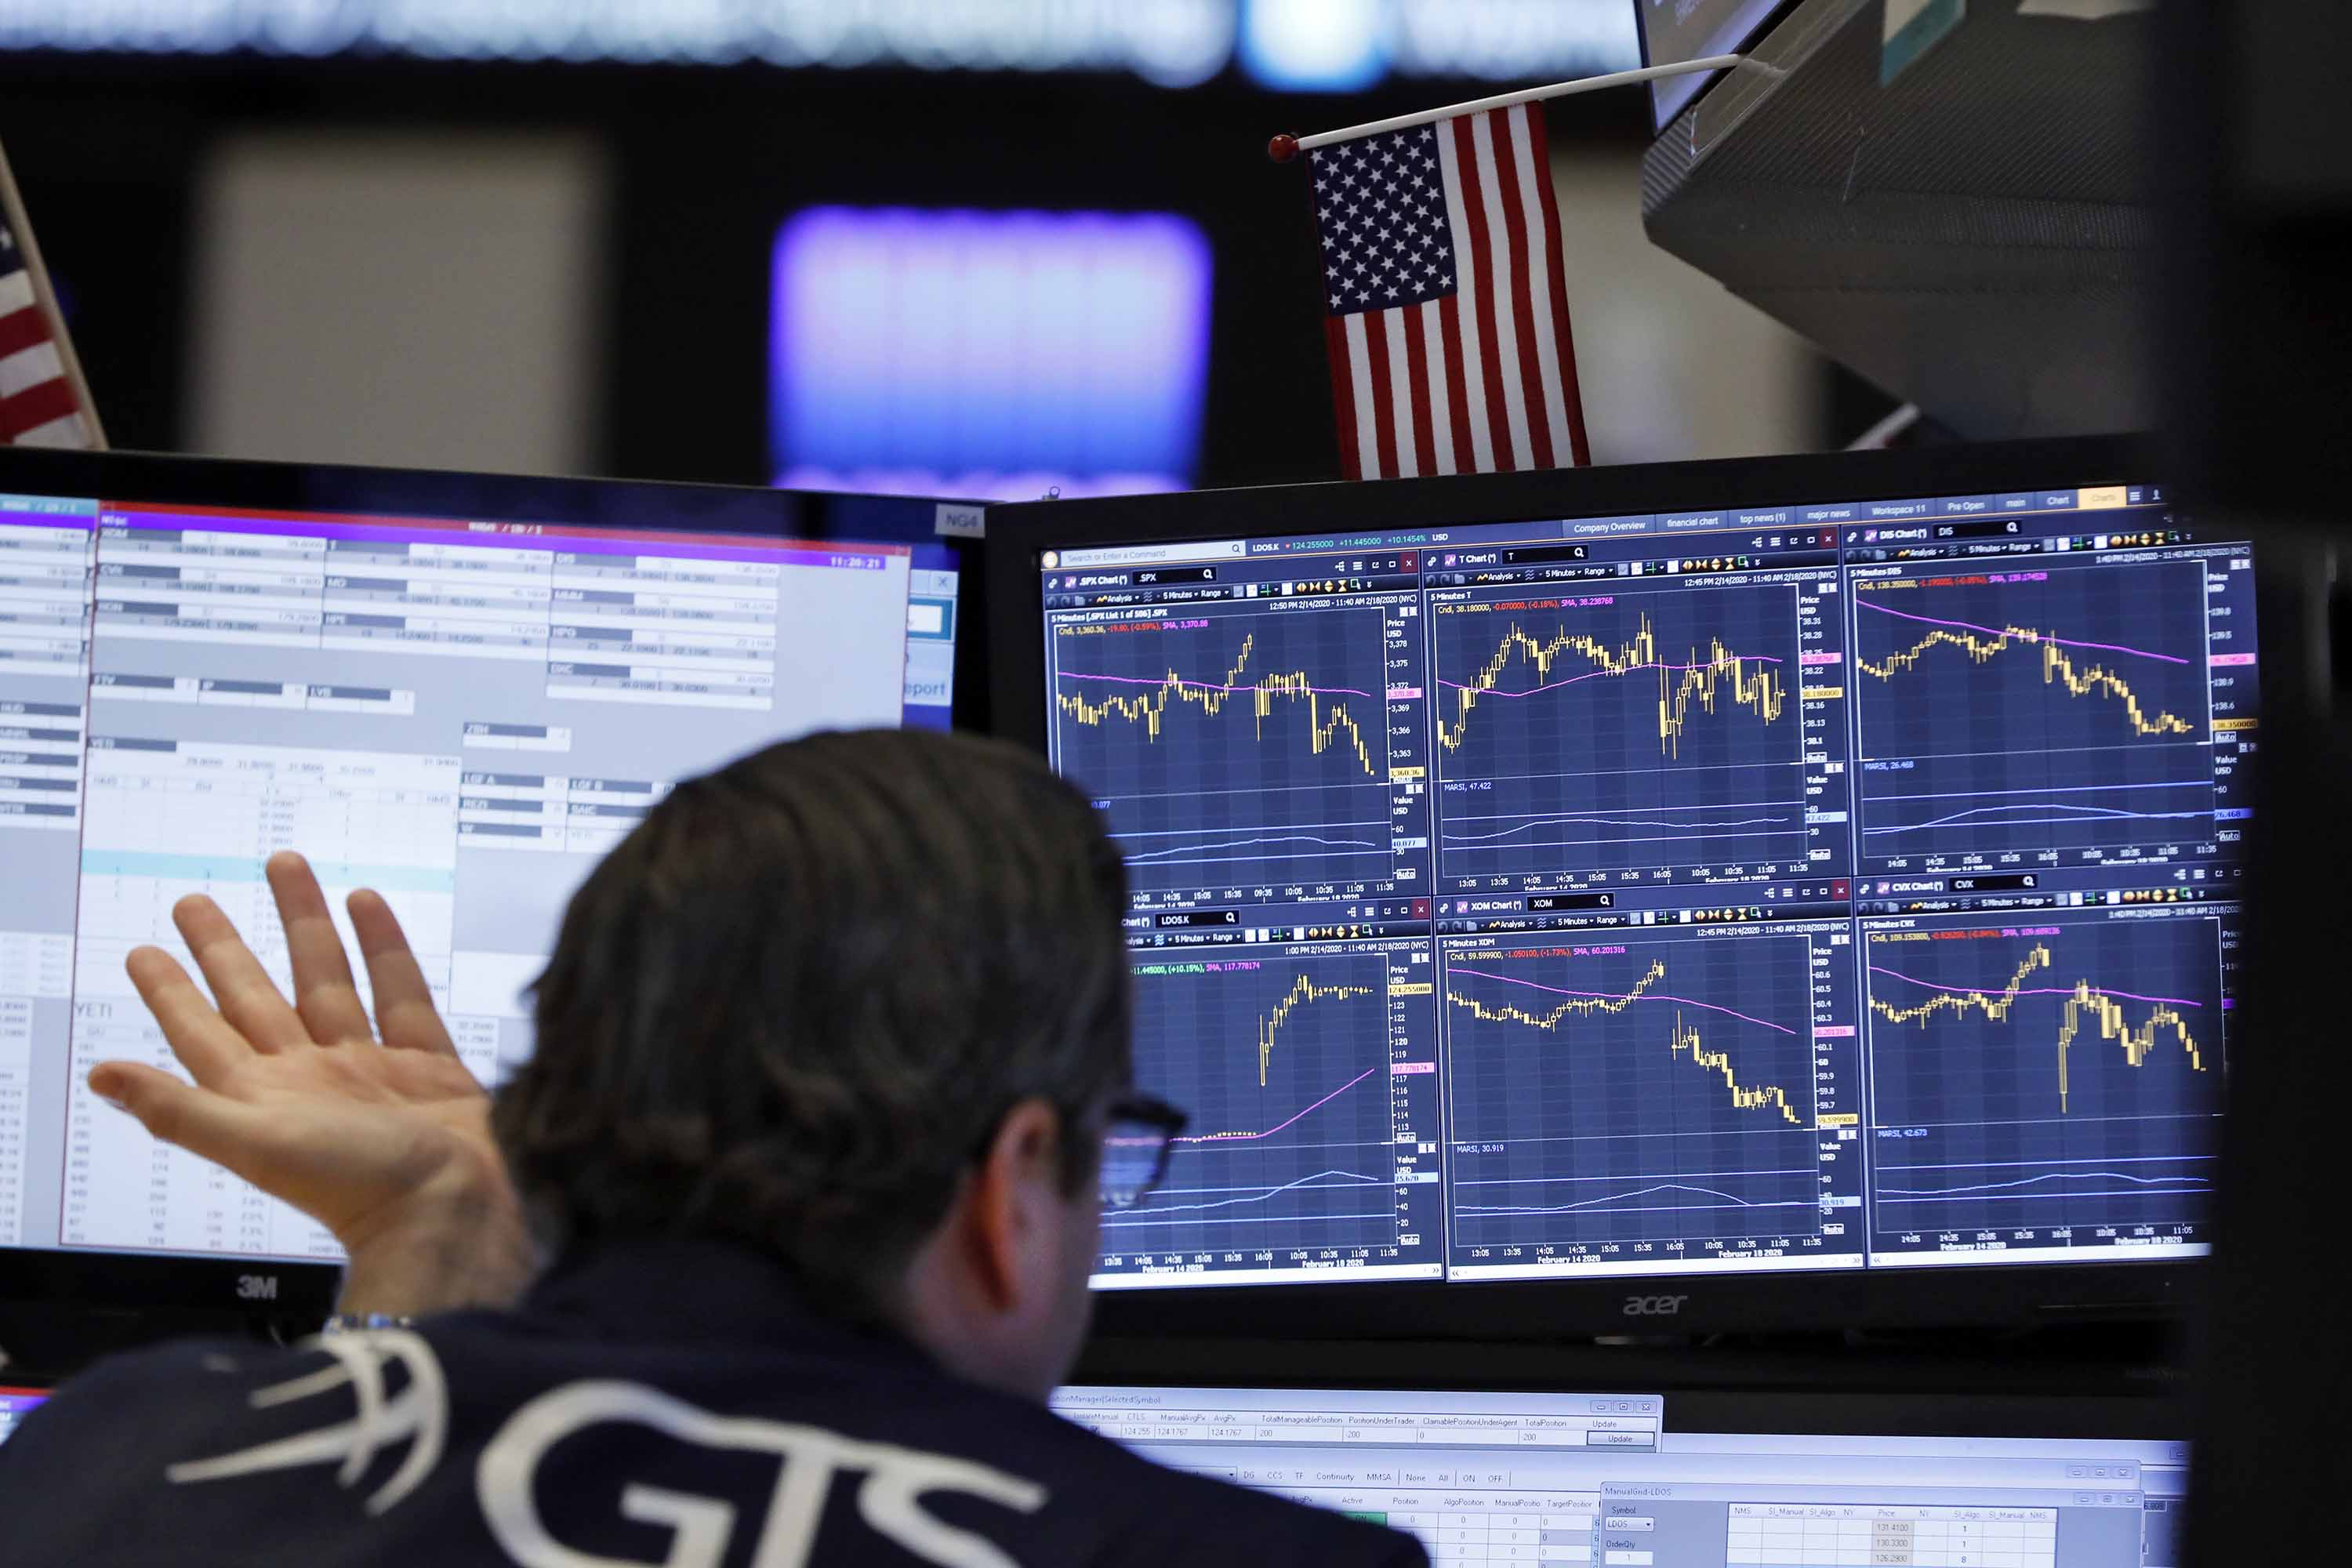 Goldman Sachs warns of stock market correction